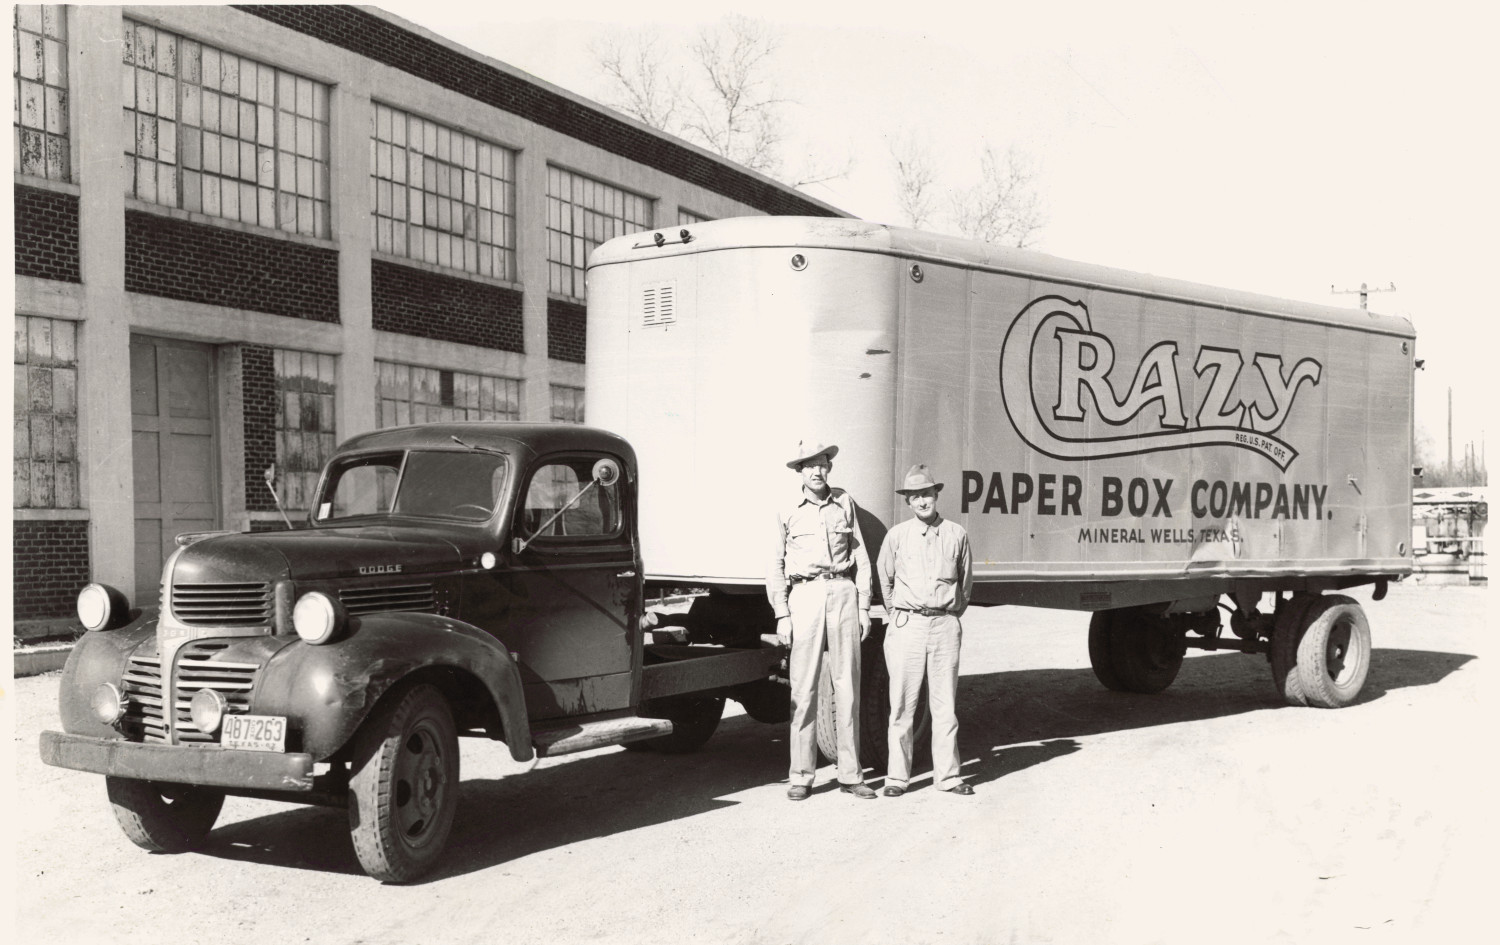 Crazy Paper Box Company                                                                                                      [Sequence #]: 1 of 1